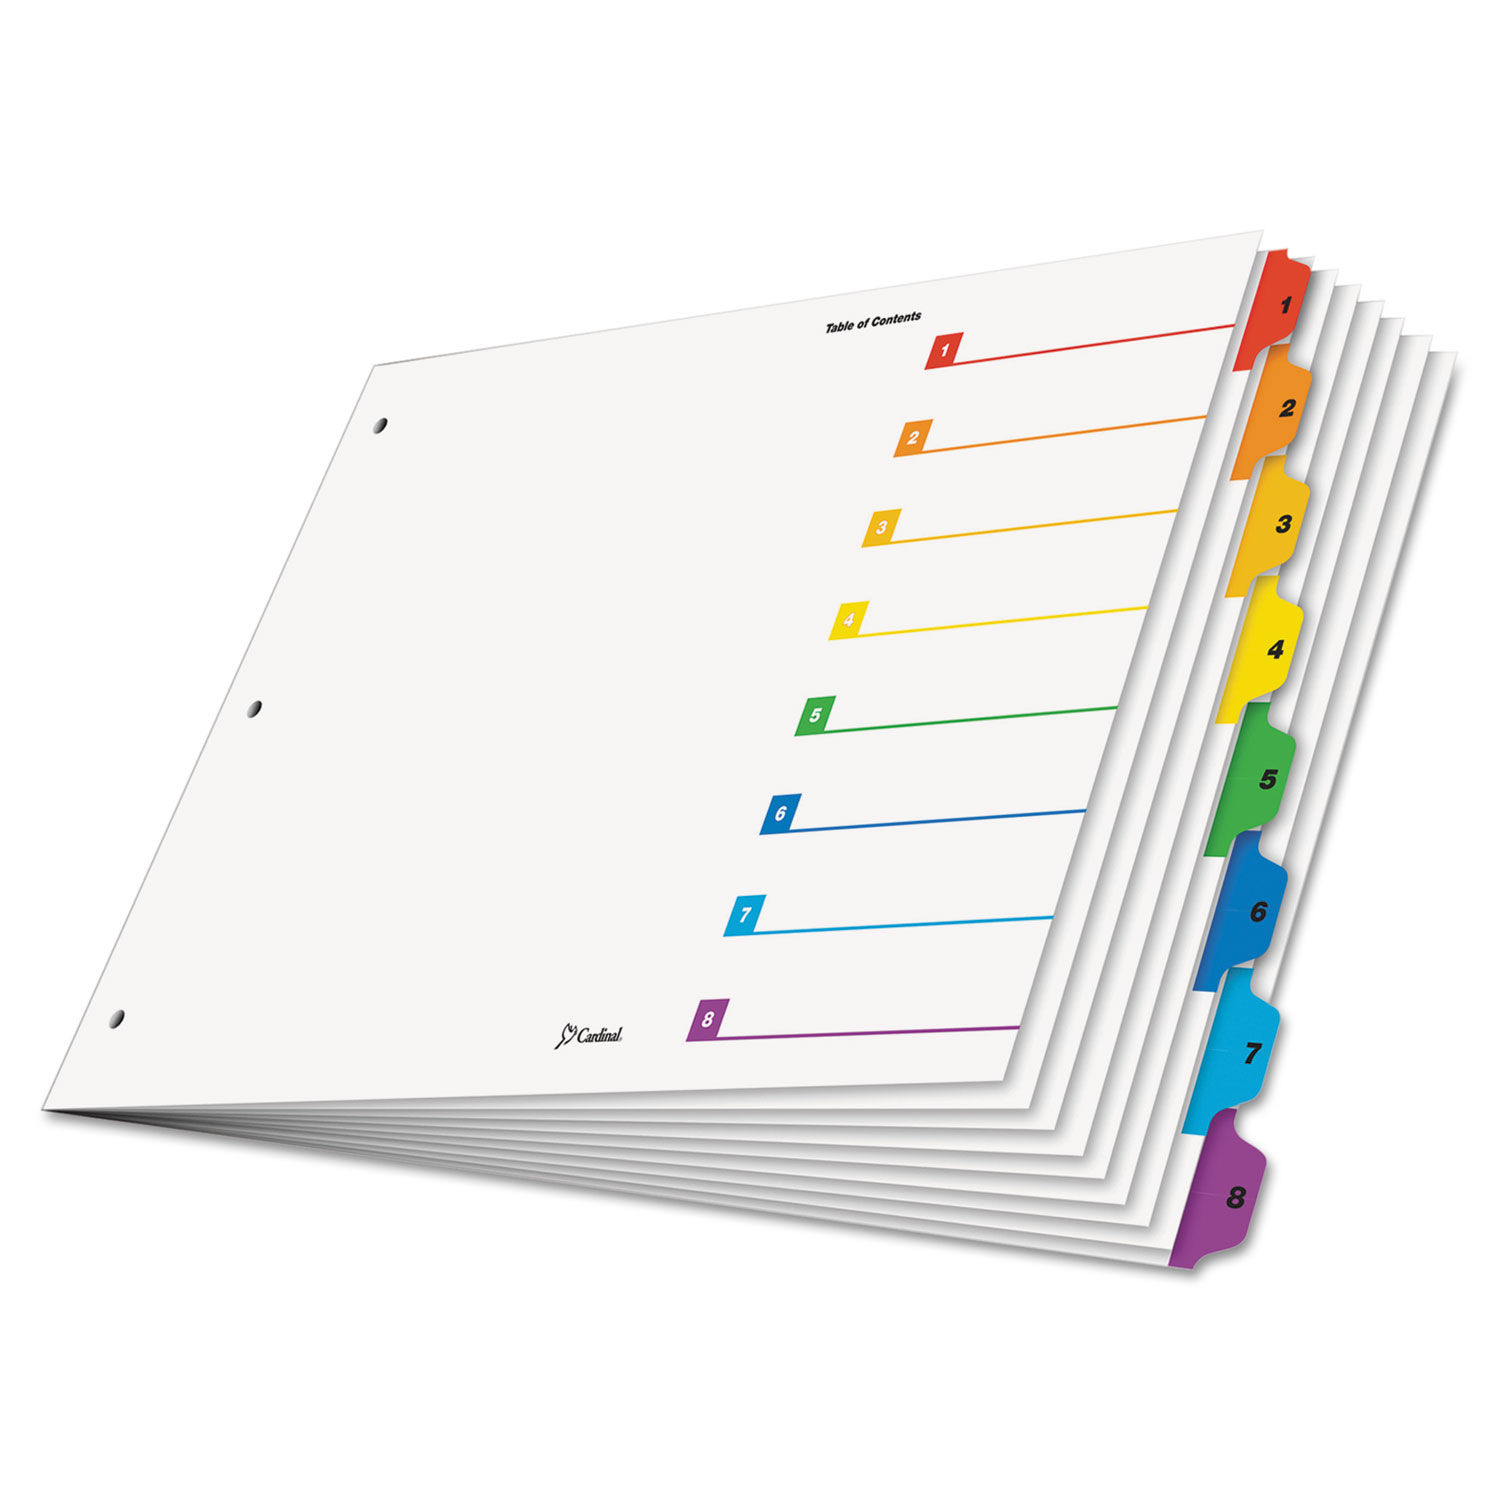 graphic regarding Printable Dividers for Binders titled OneStep Printable Desk of Contents Dividers, 8-Tab, 11 x 17, Multicolor Tabs